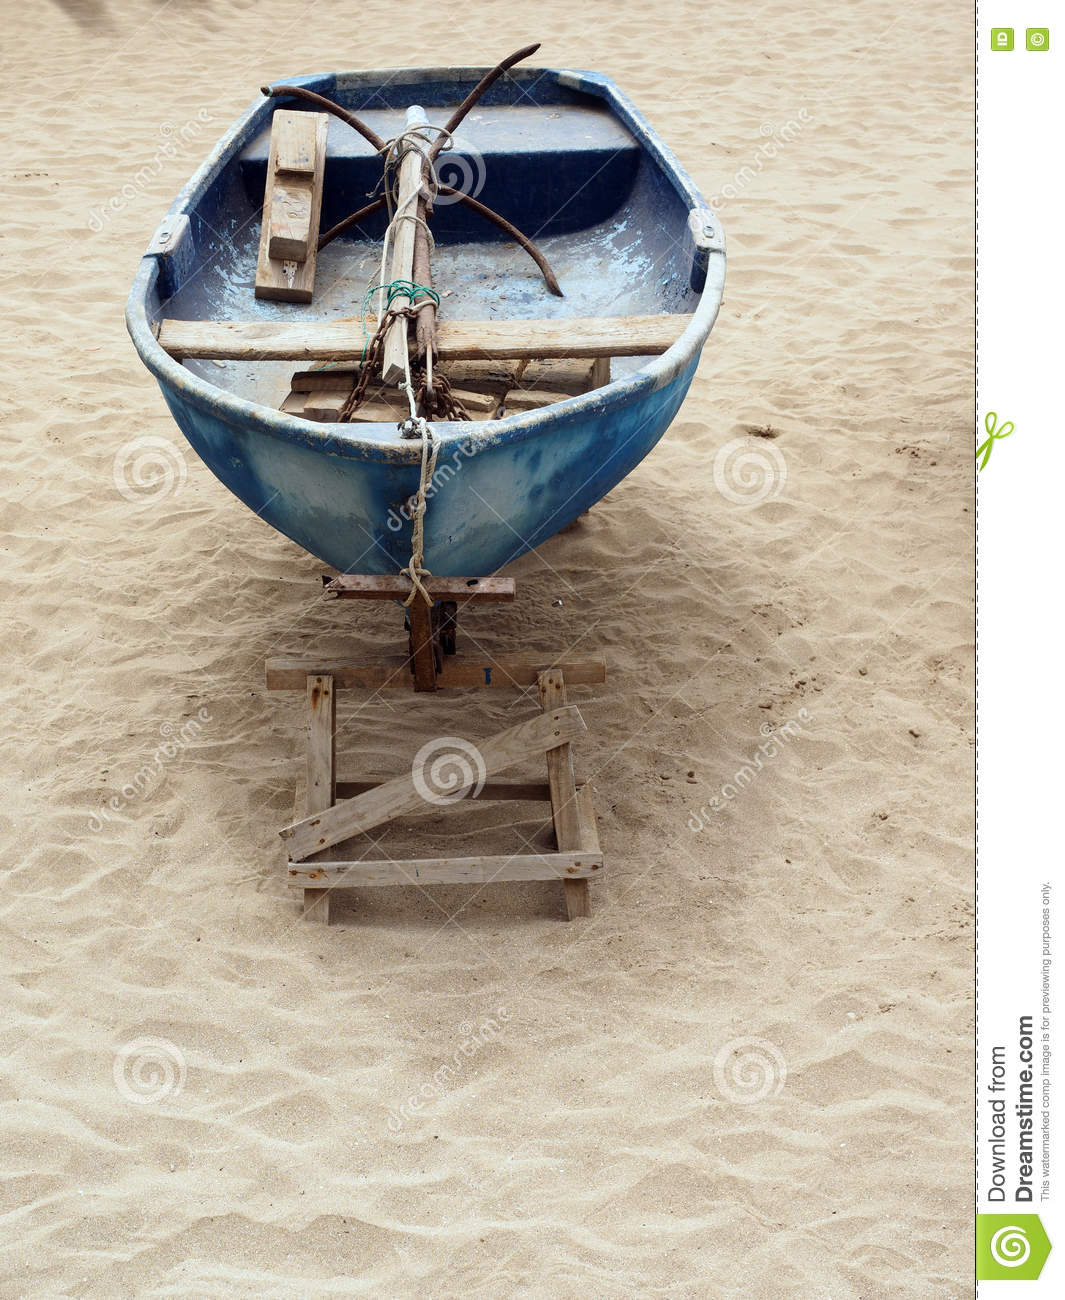 Old Fishing Boats On Beach: Old Fishing Boat With Anchor Playa Las Canteras Beach Las